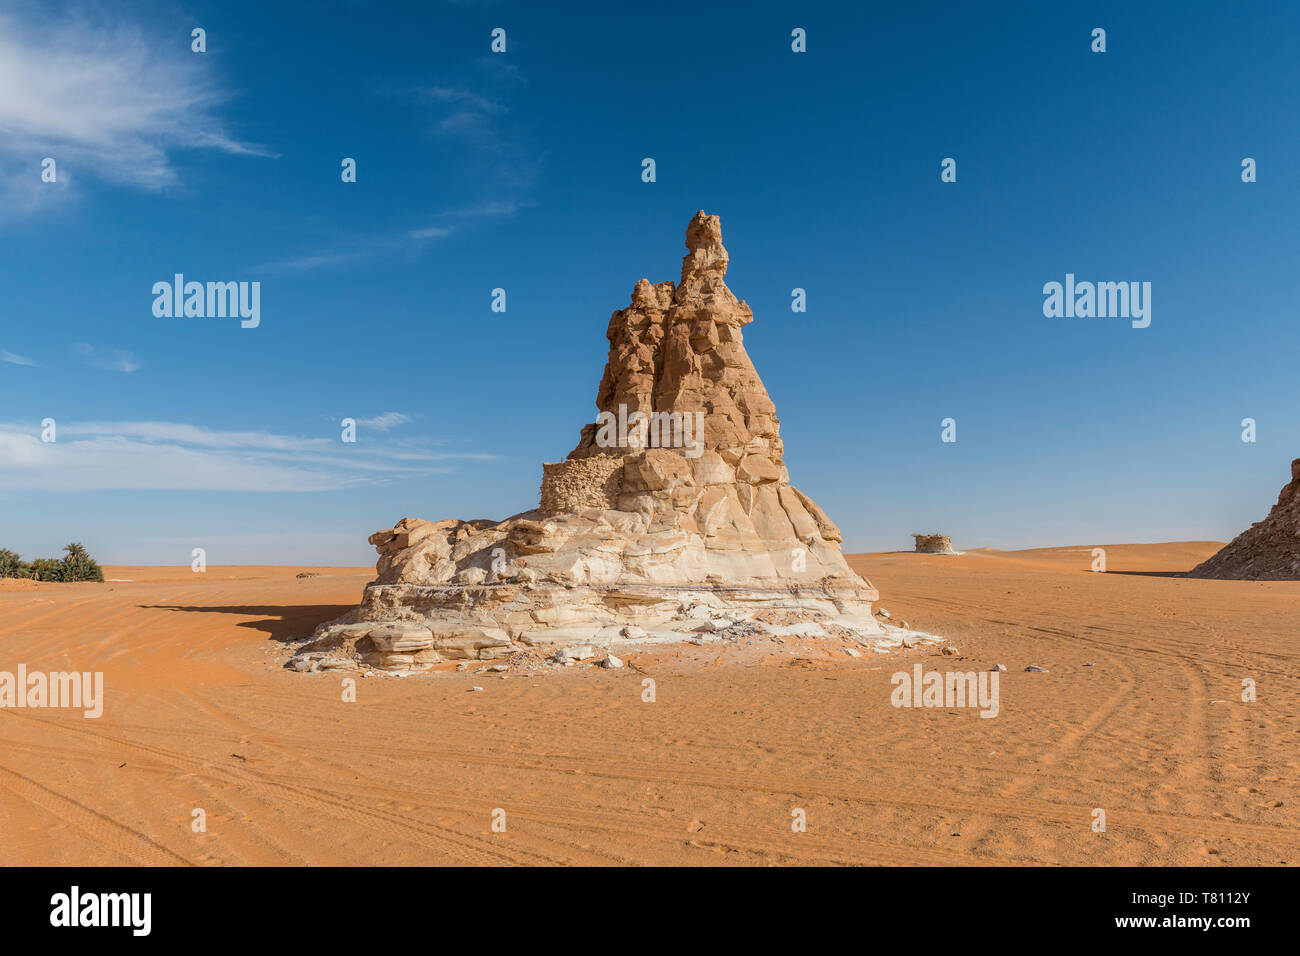 Sandstone tower at a Salt water lake in Northern Chad, Africa - Stock Image